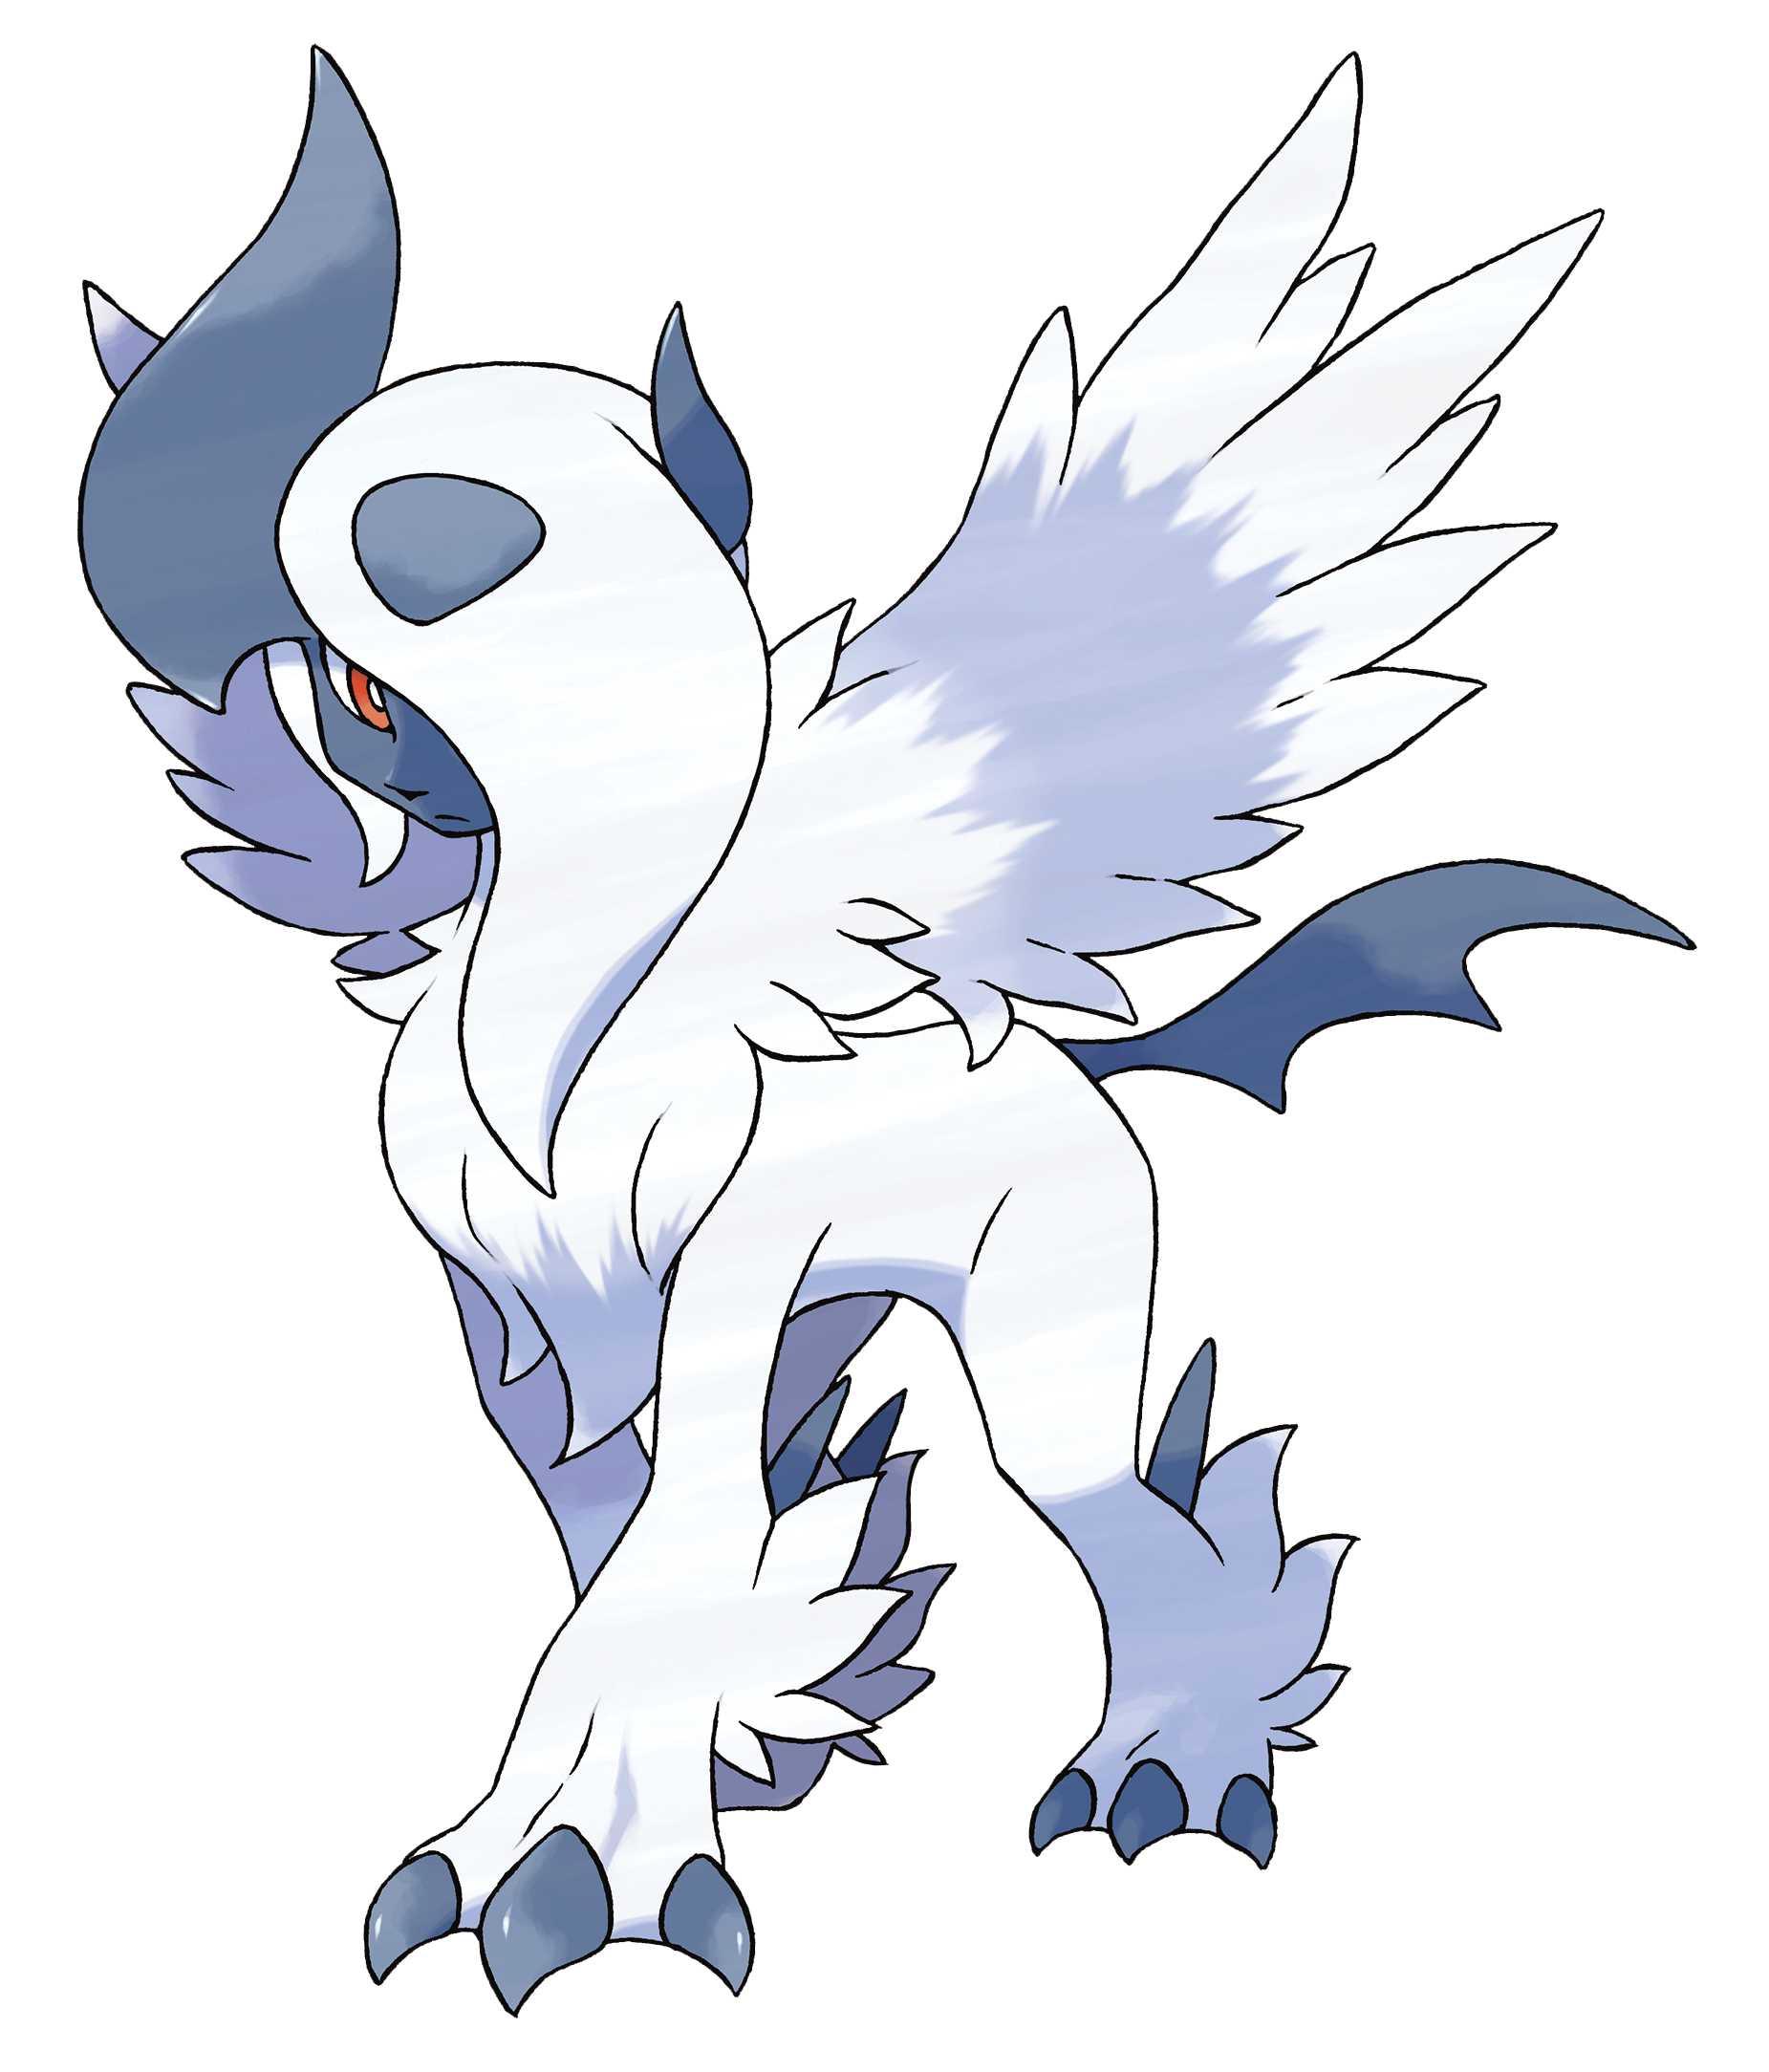 Mega absol mega evolution pok mon x y azurilland - Pokemon mega evolution y ...